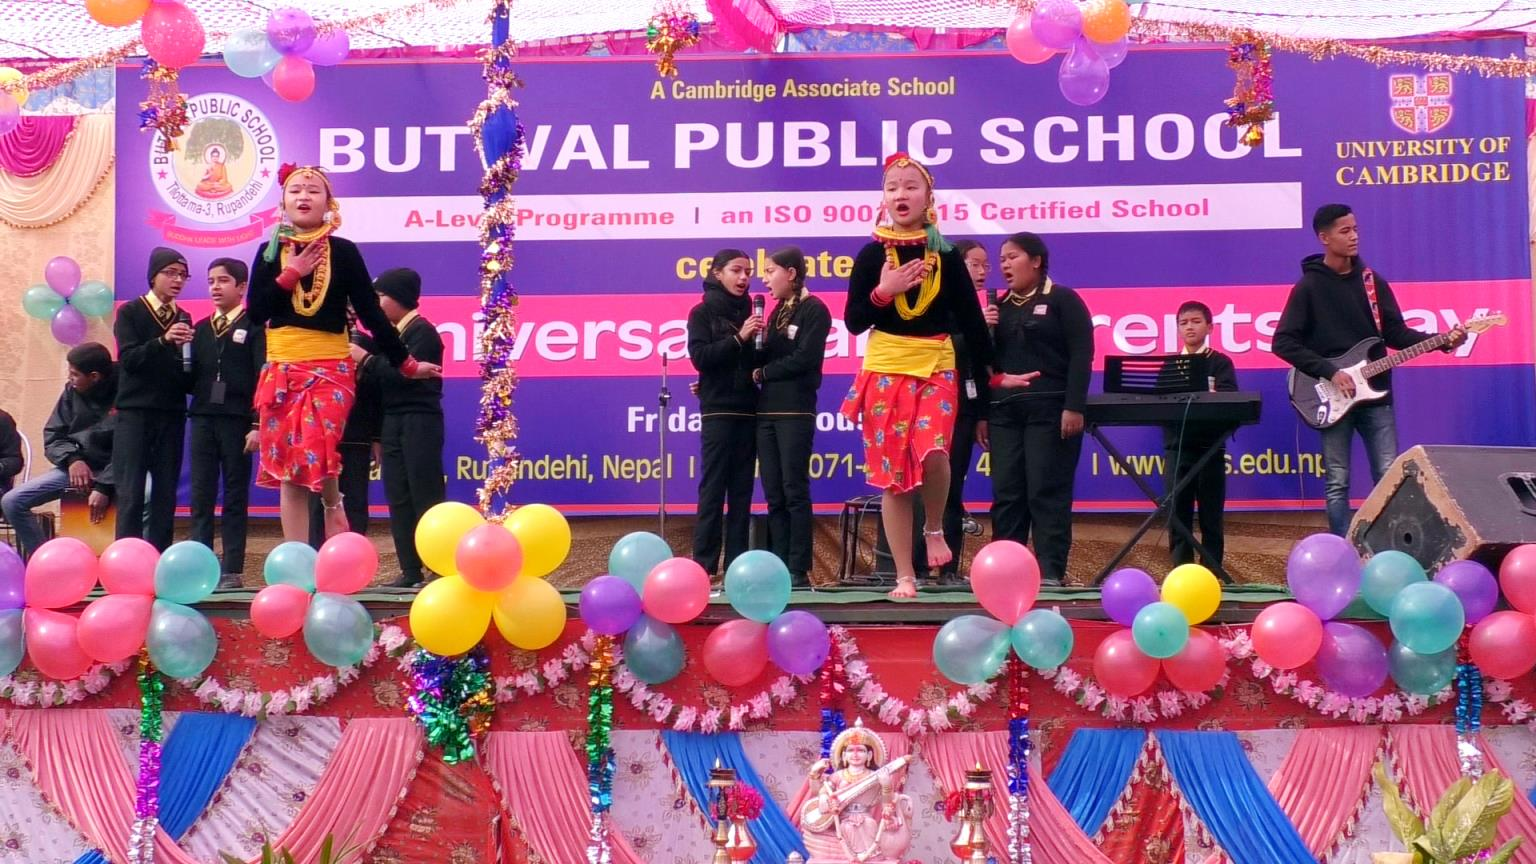 Butwal Public School, Center of Excellence in Butwal